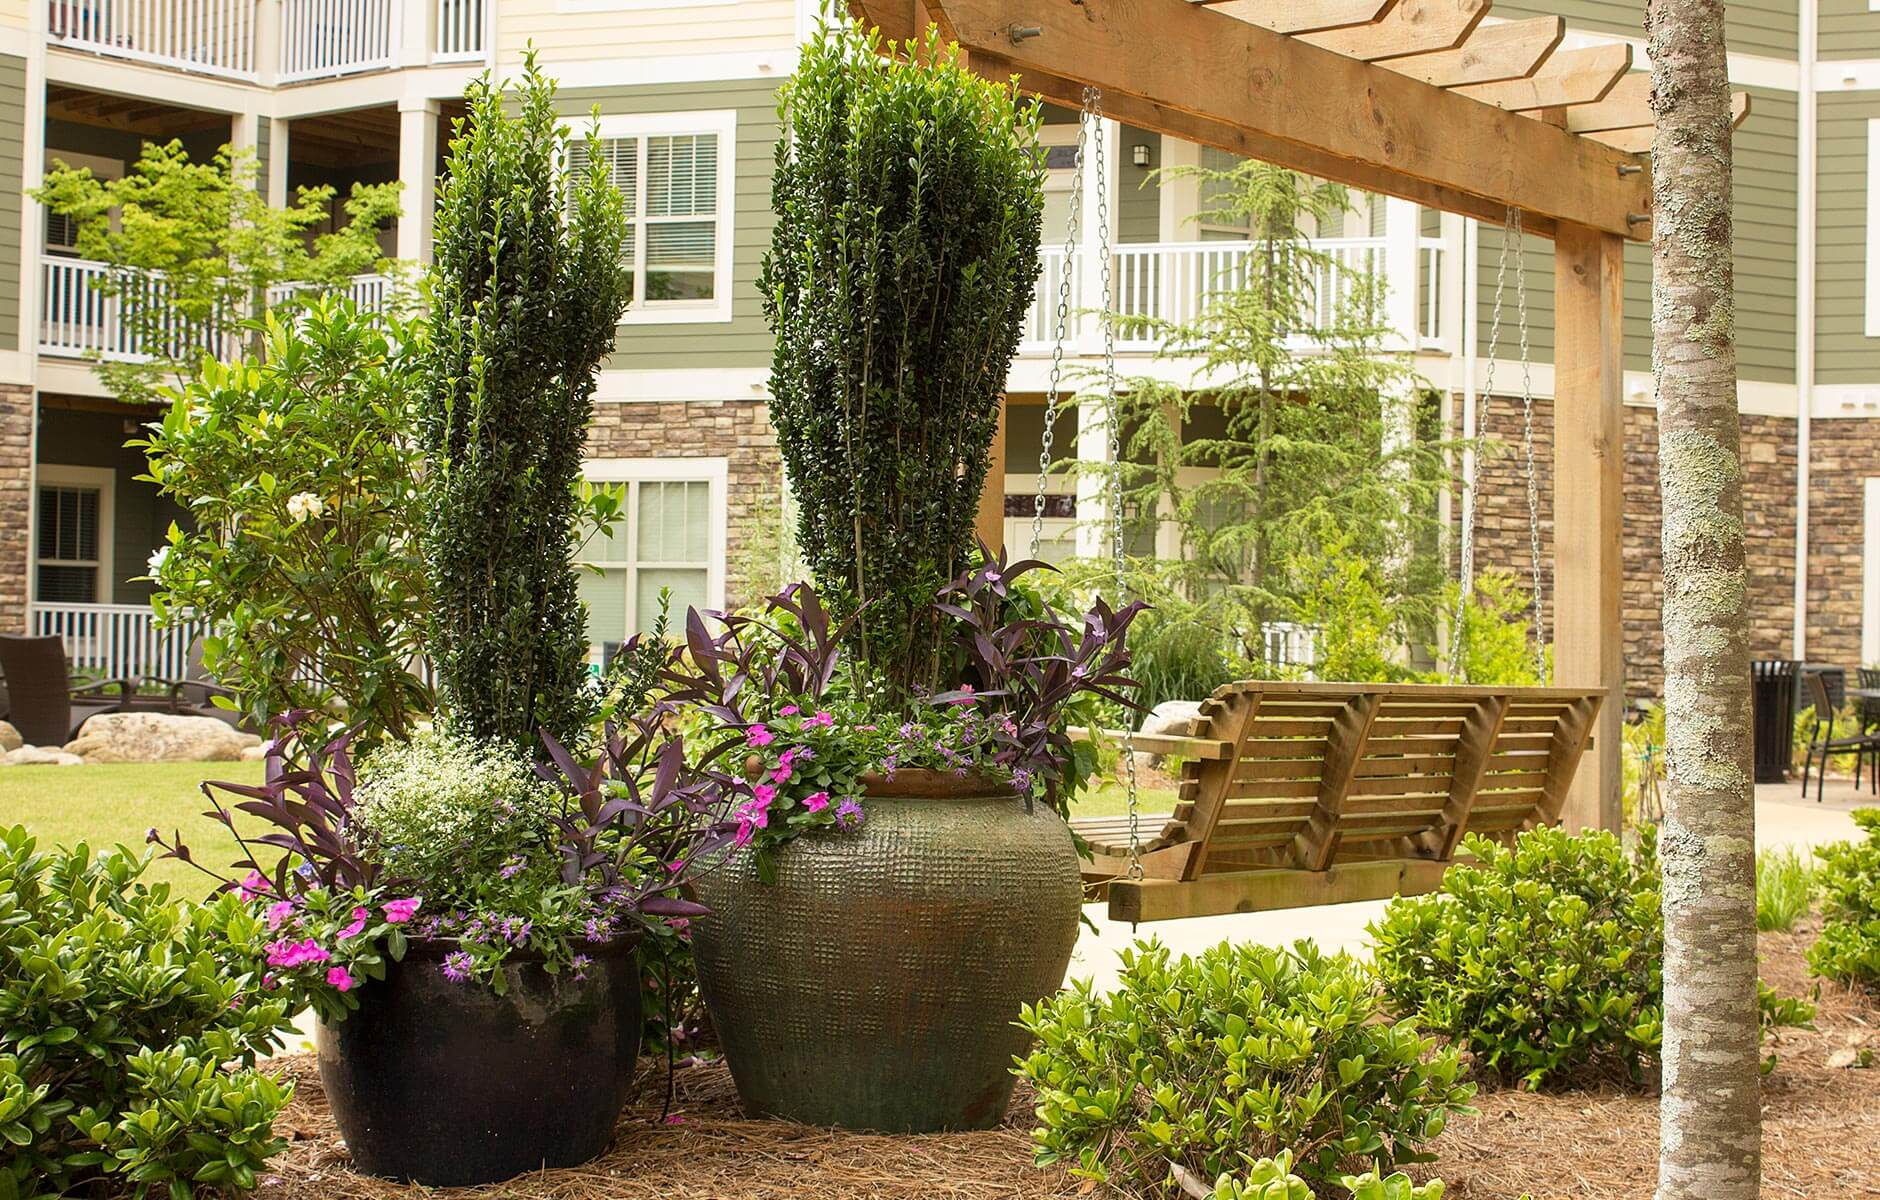 Large flower pots add appeal to this courtyard space